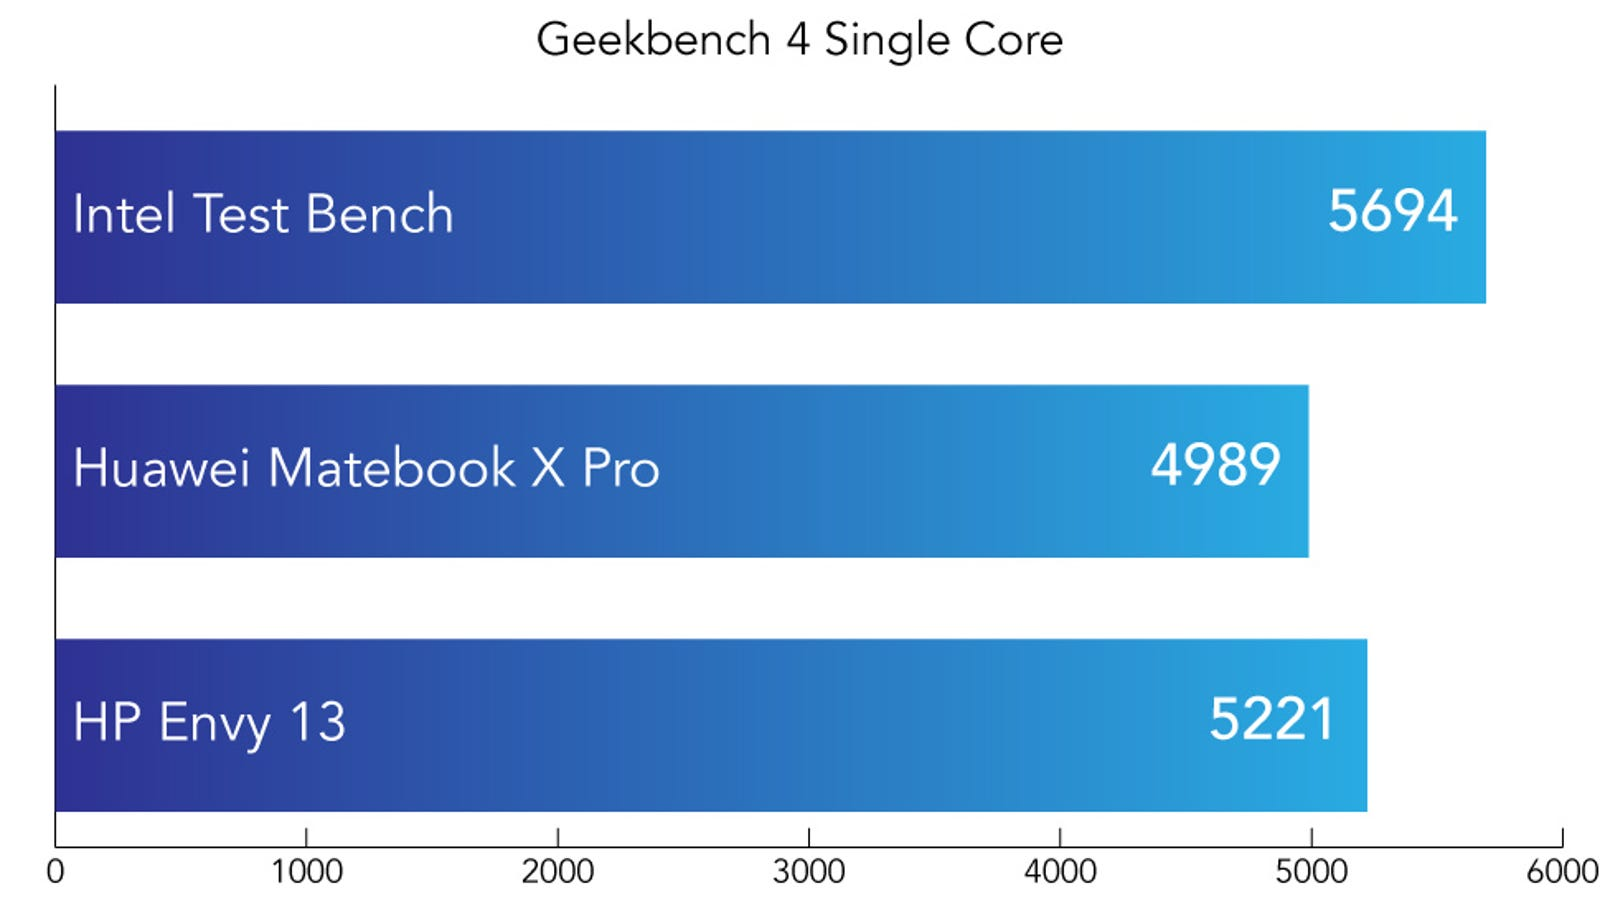 Geekbench 4 is a synthetic benchmark designed to test every component of the device. The Single Core score focuses on the quality of a single core of the CPU. Higher is better.